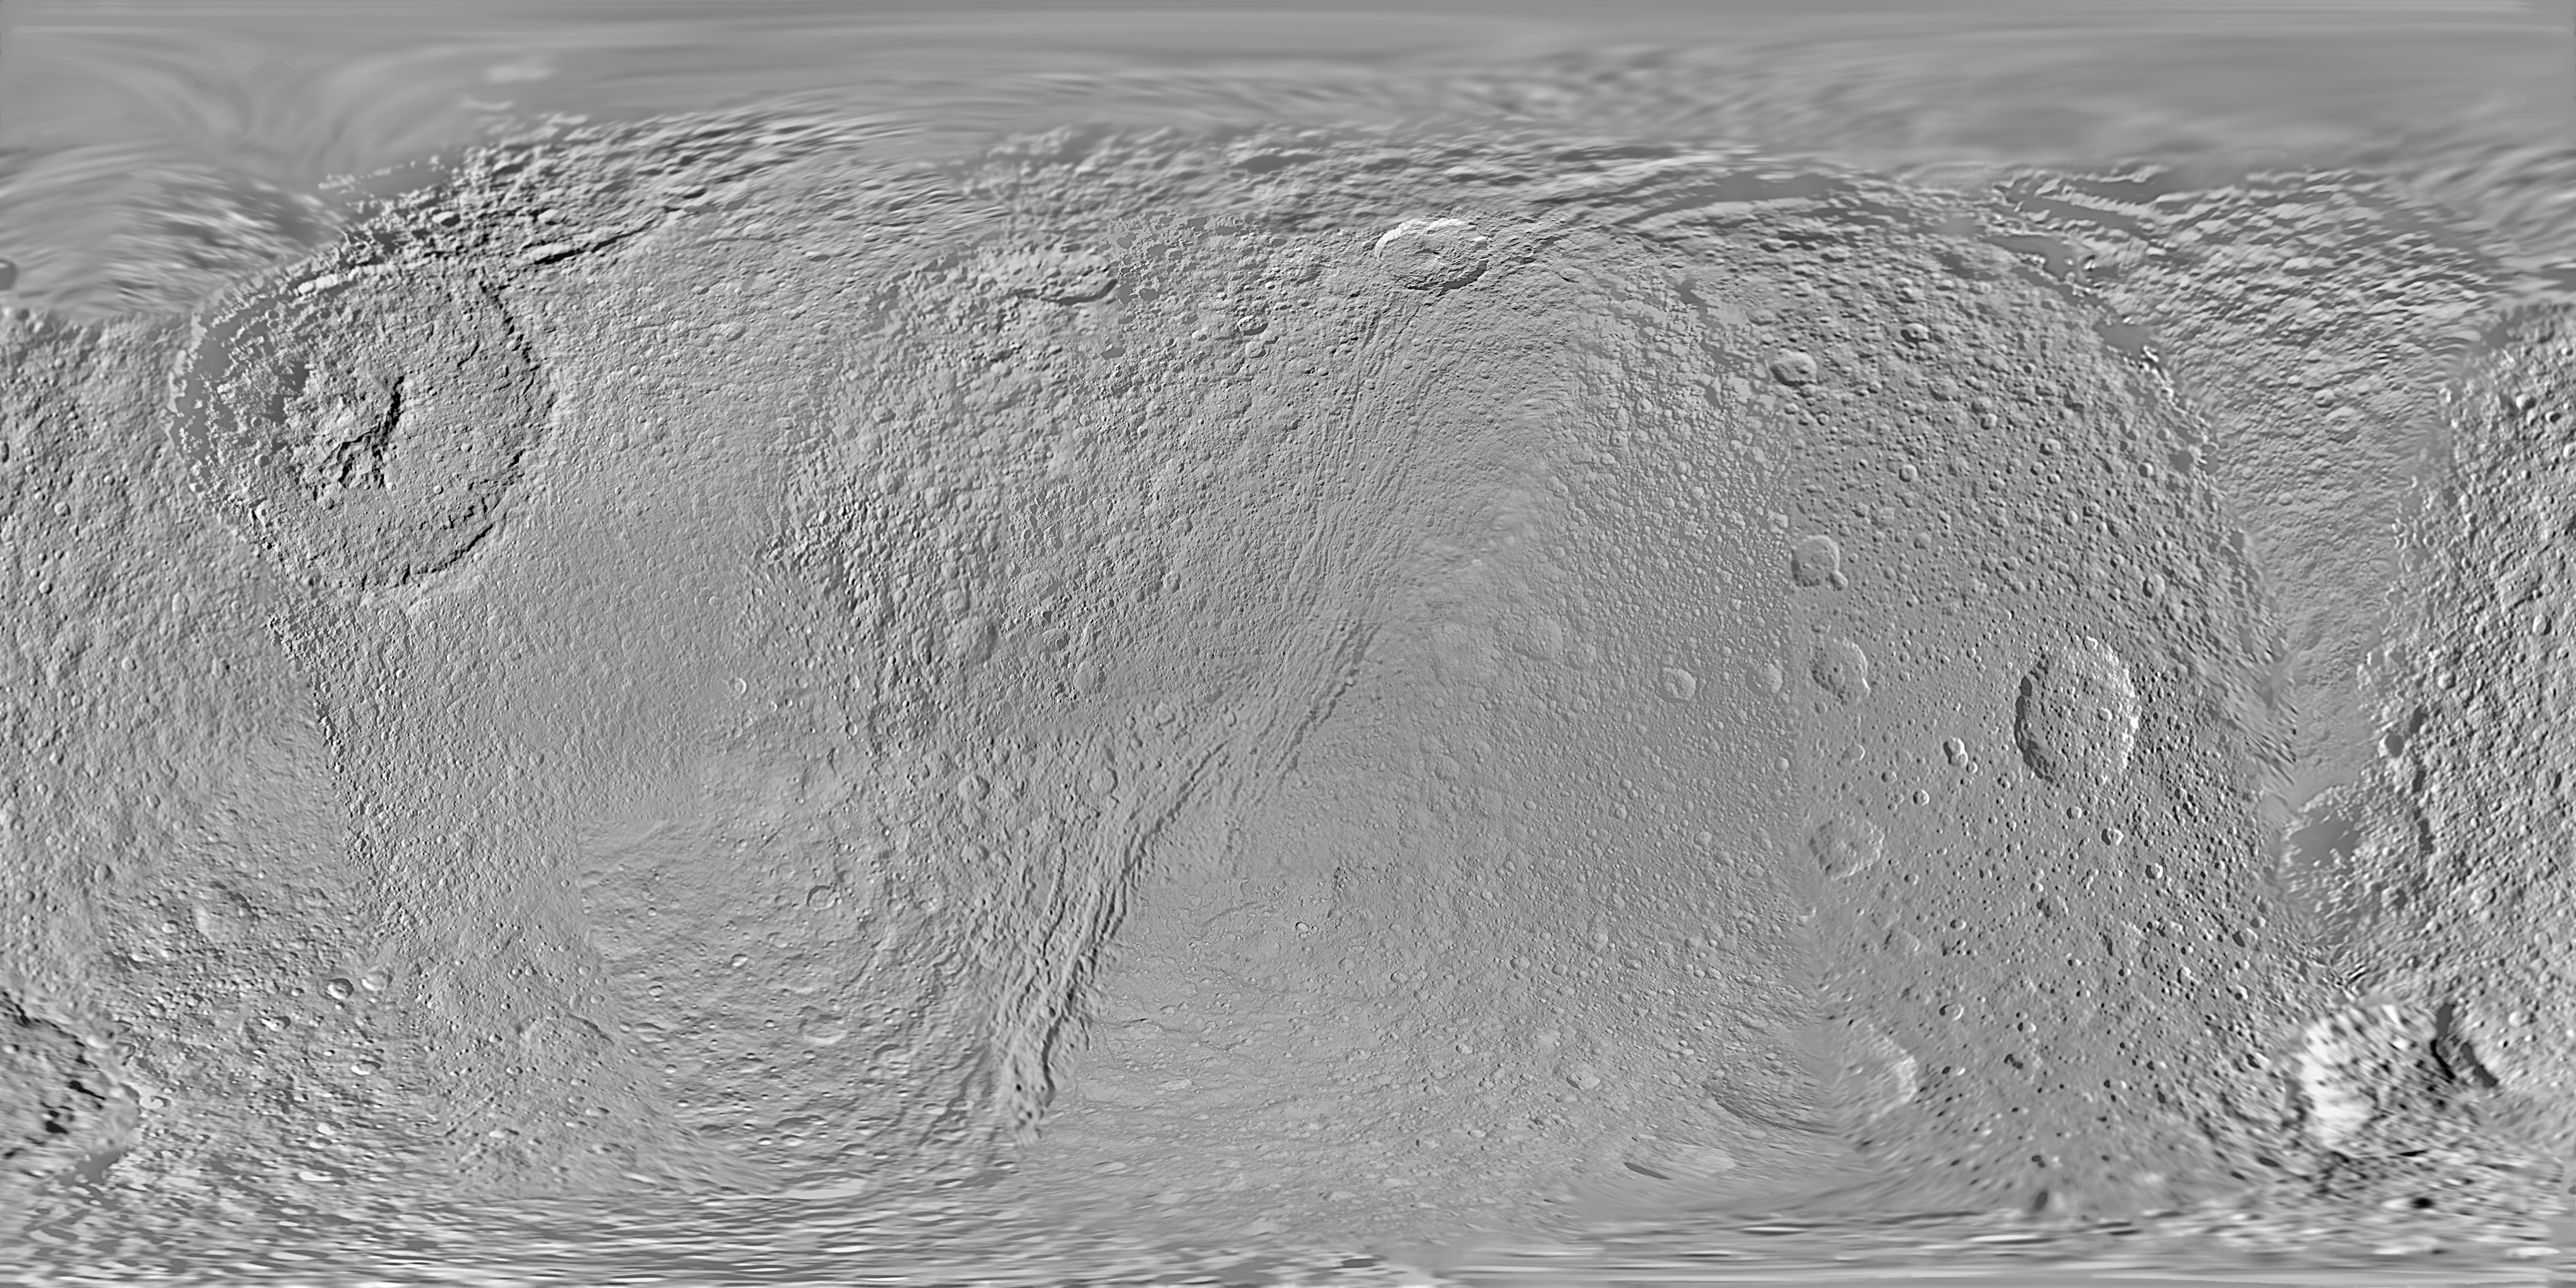 Datei:Tethys map June 2008 PIA08416 moon only.jpg – Wikipedia